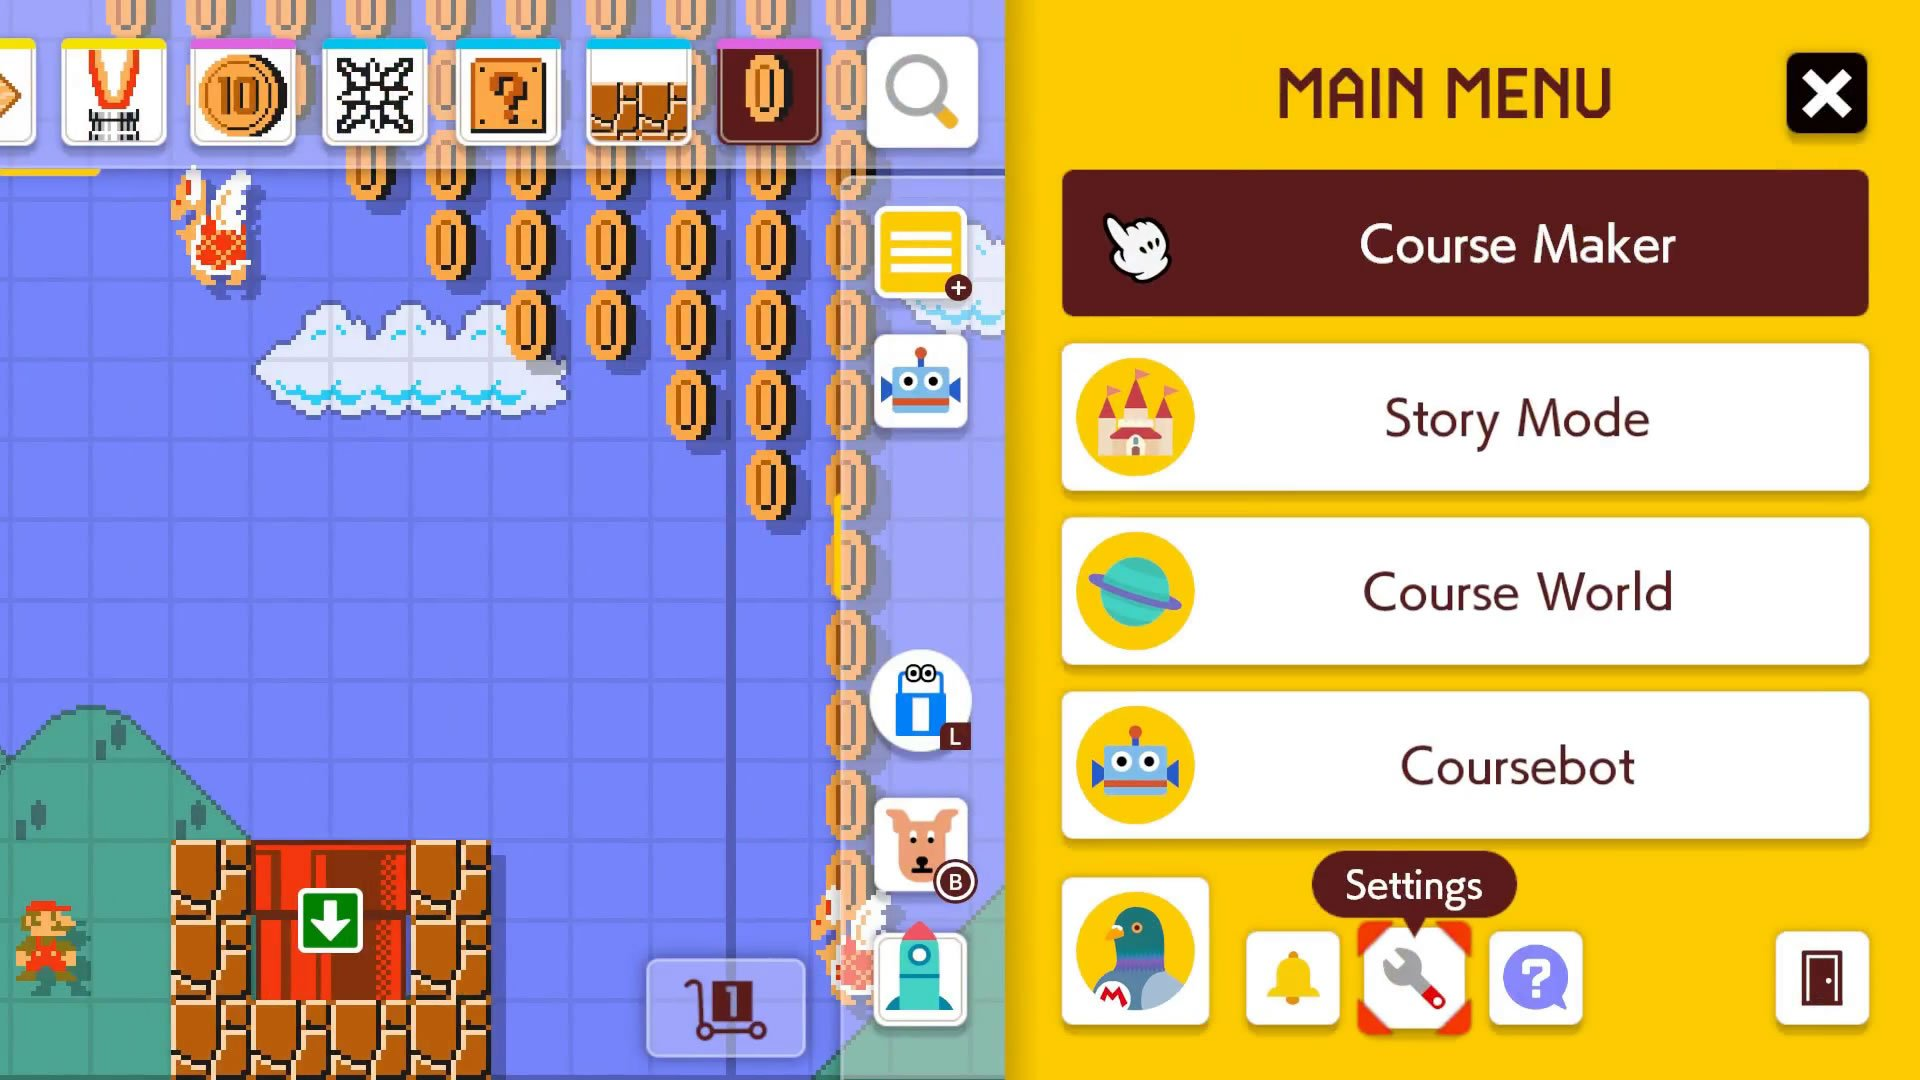 How to change characters in Super Mario Maker 2 main menu